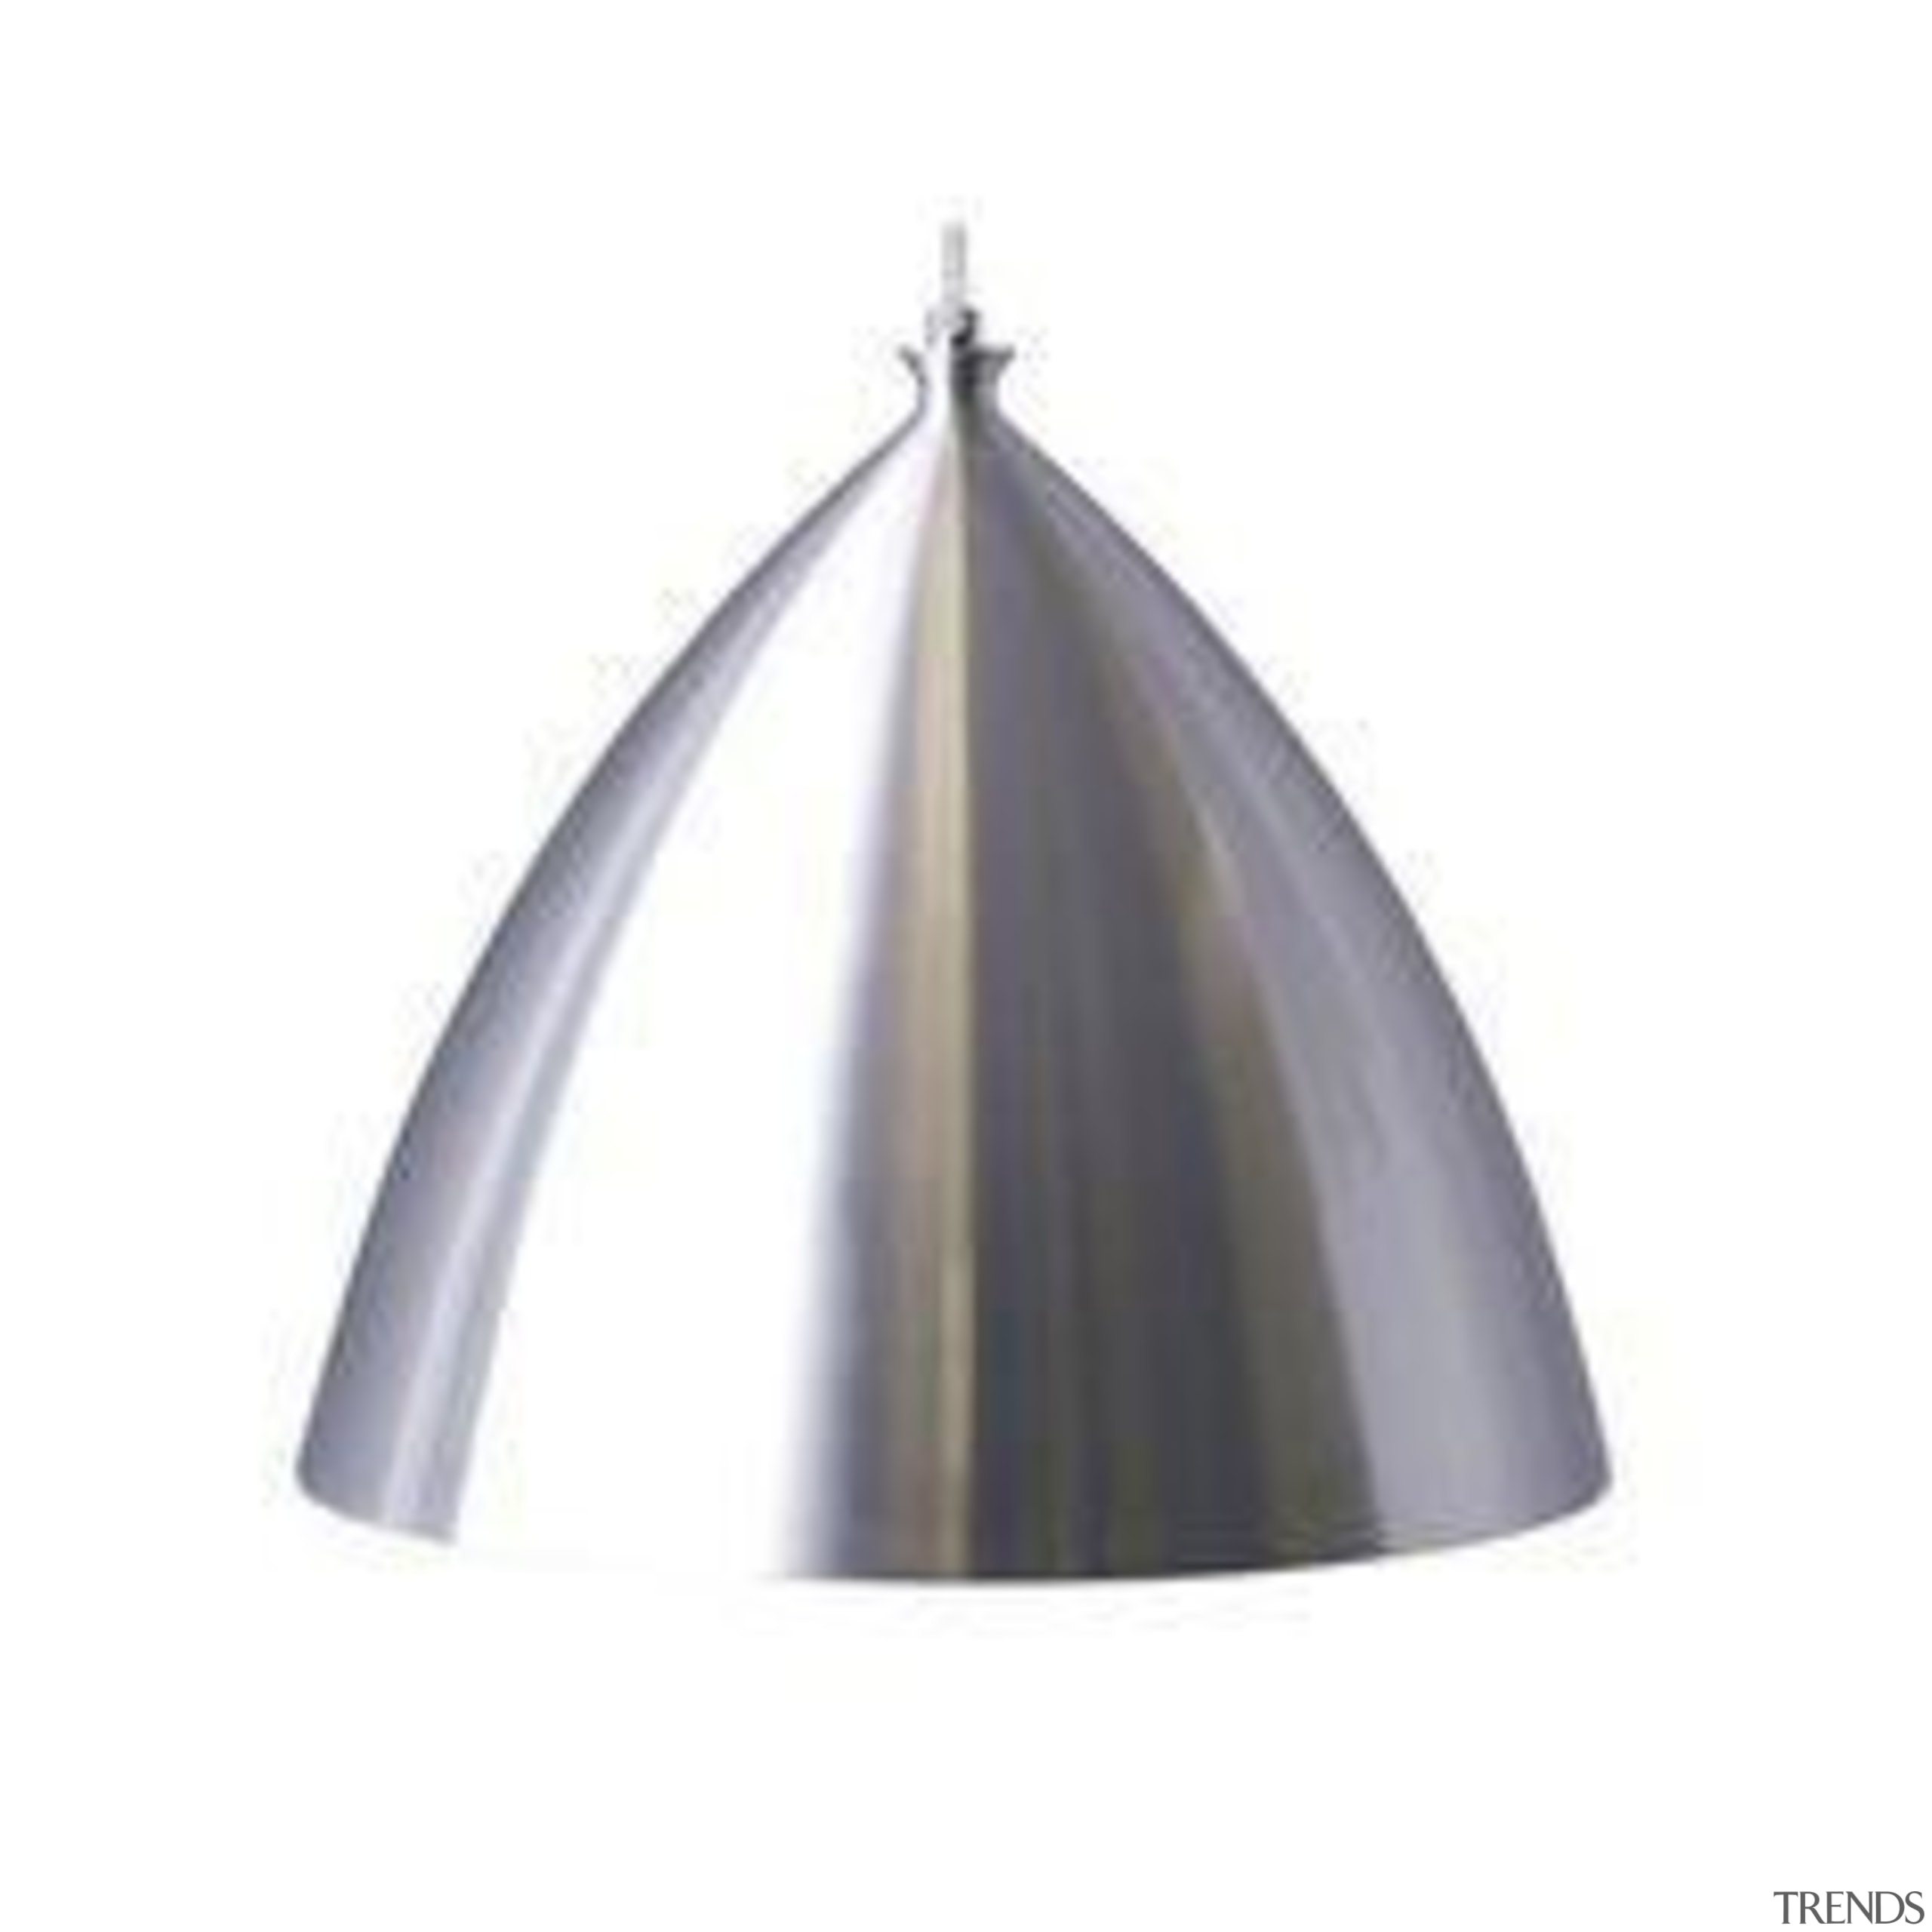 Loving these retro-look pendants! - Loving these retro-look lighting, product, product design, white